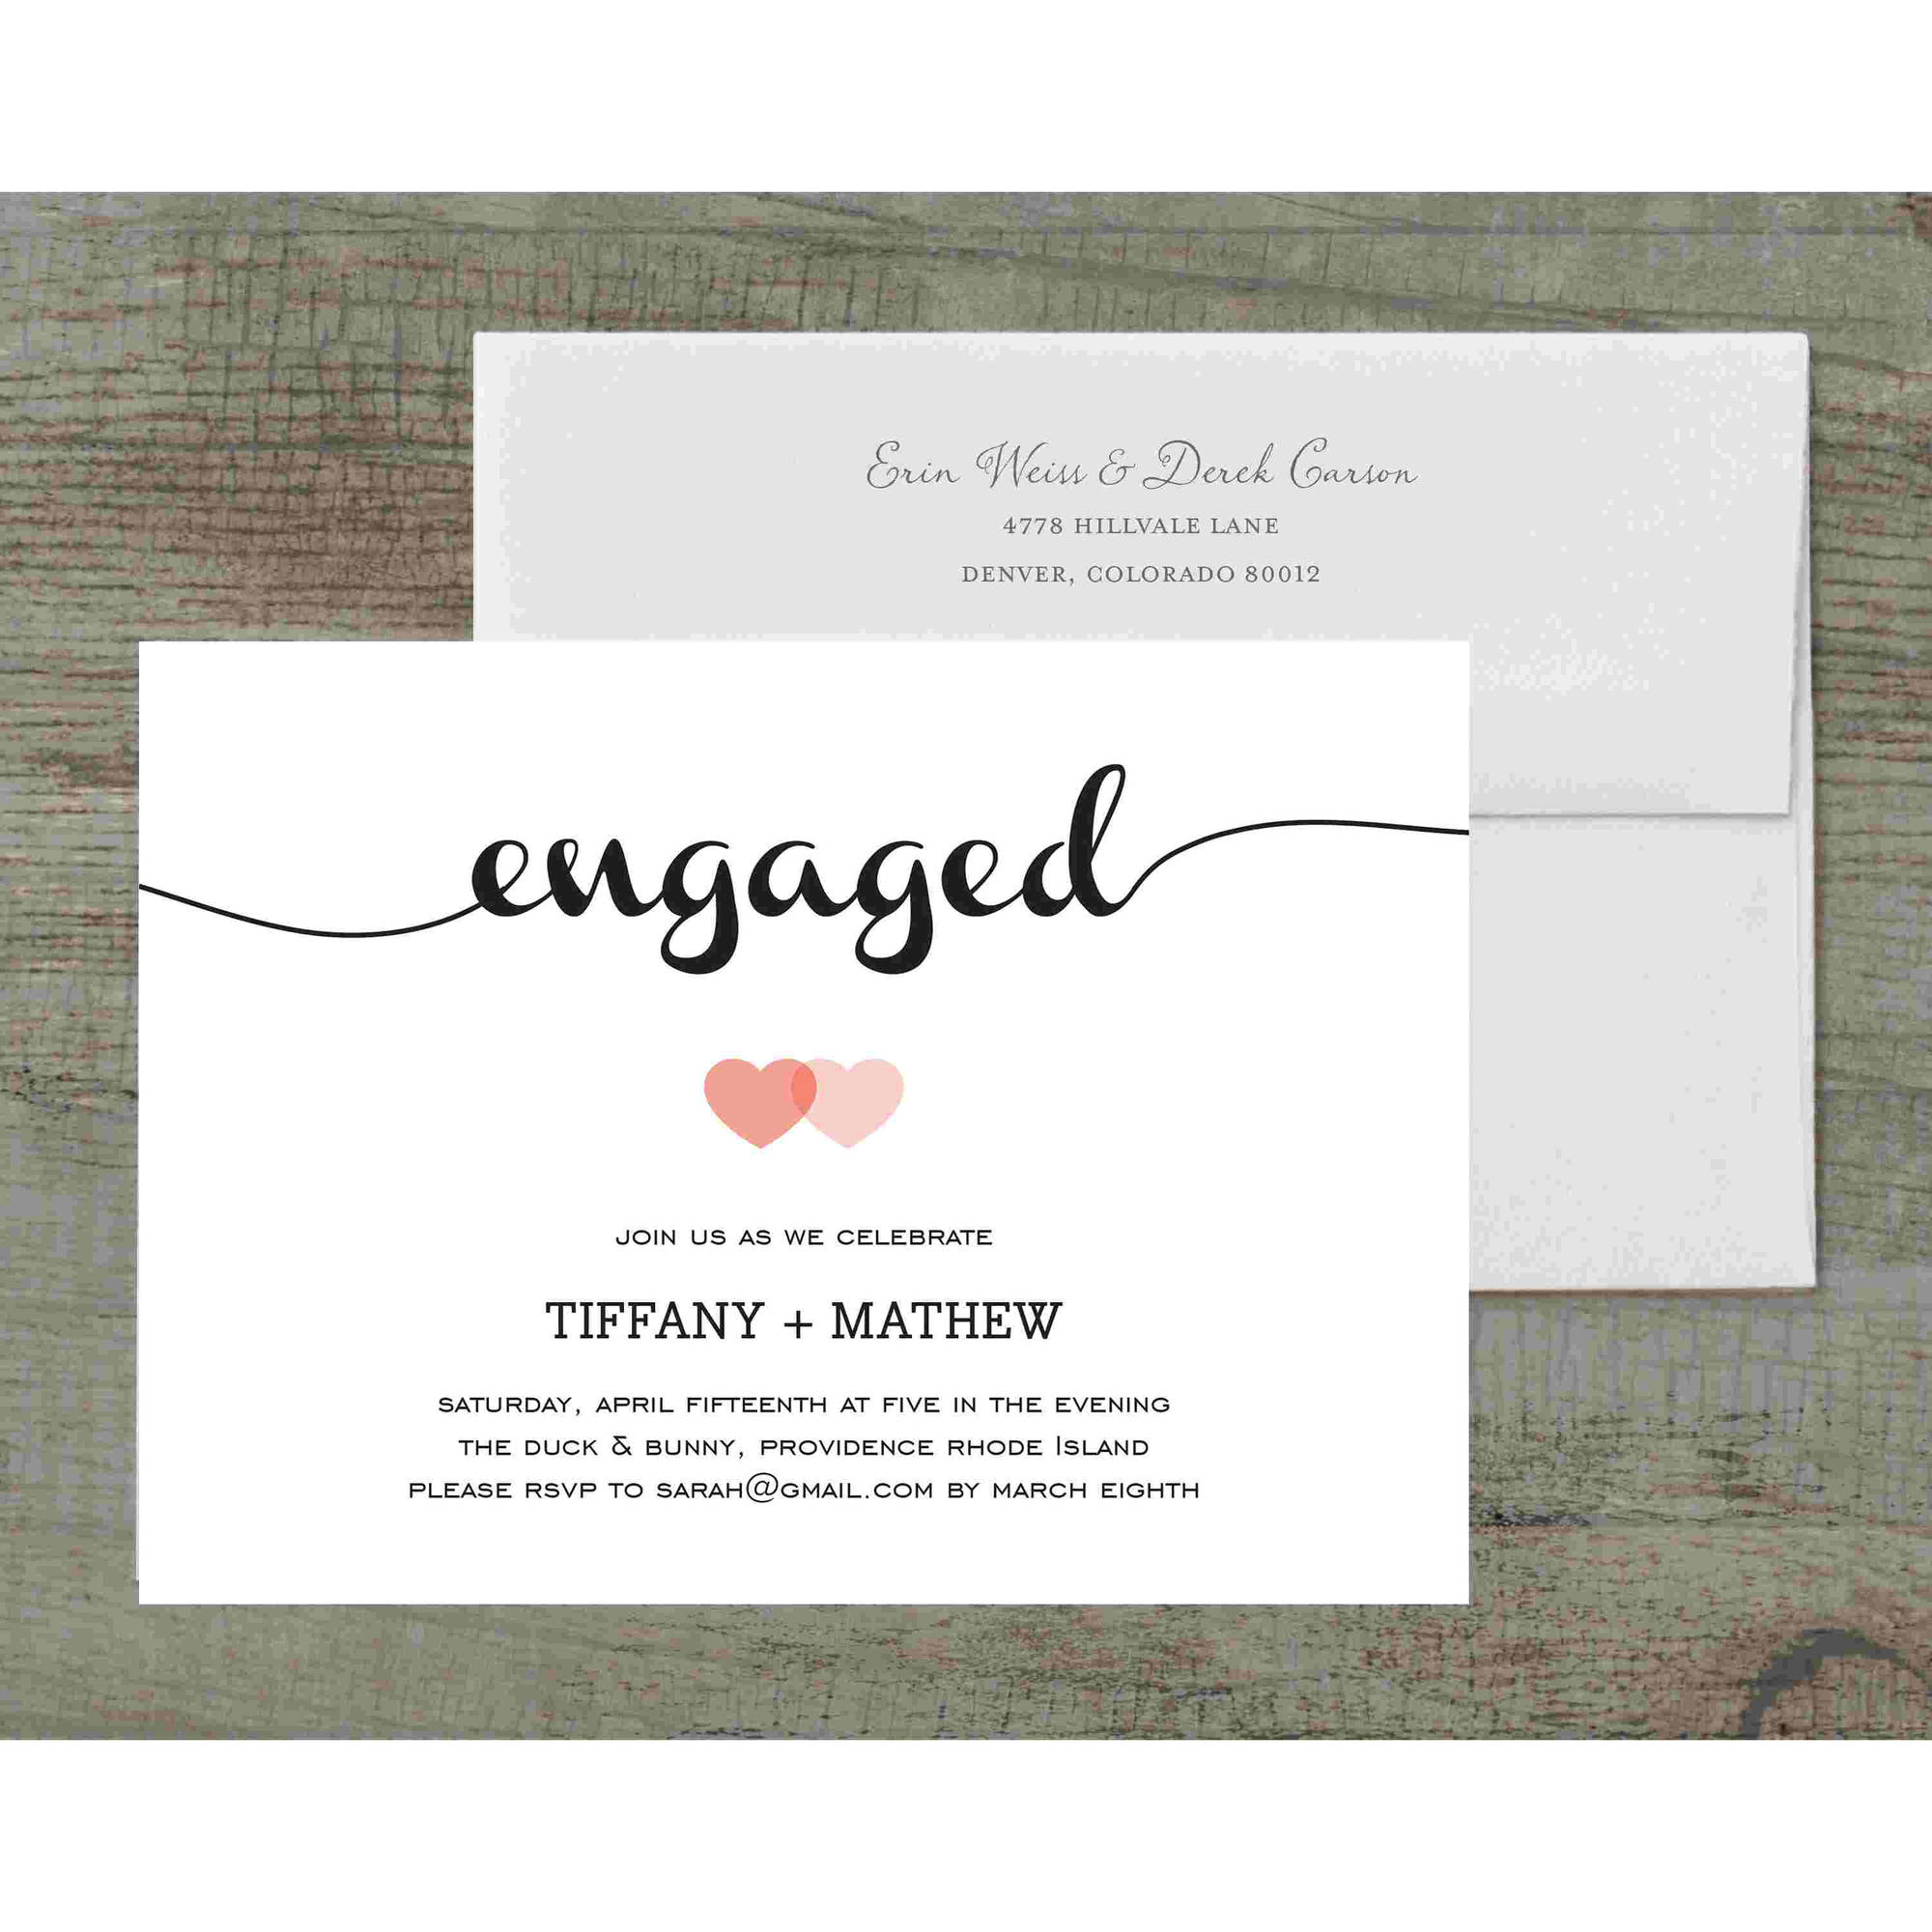 Loving Engagement Party Invite Deluxe Engagement